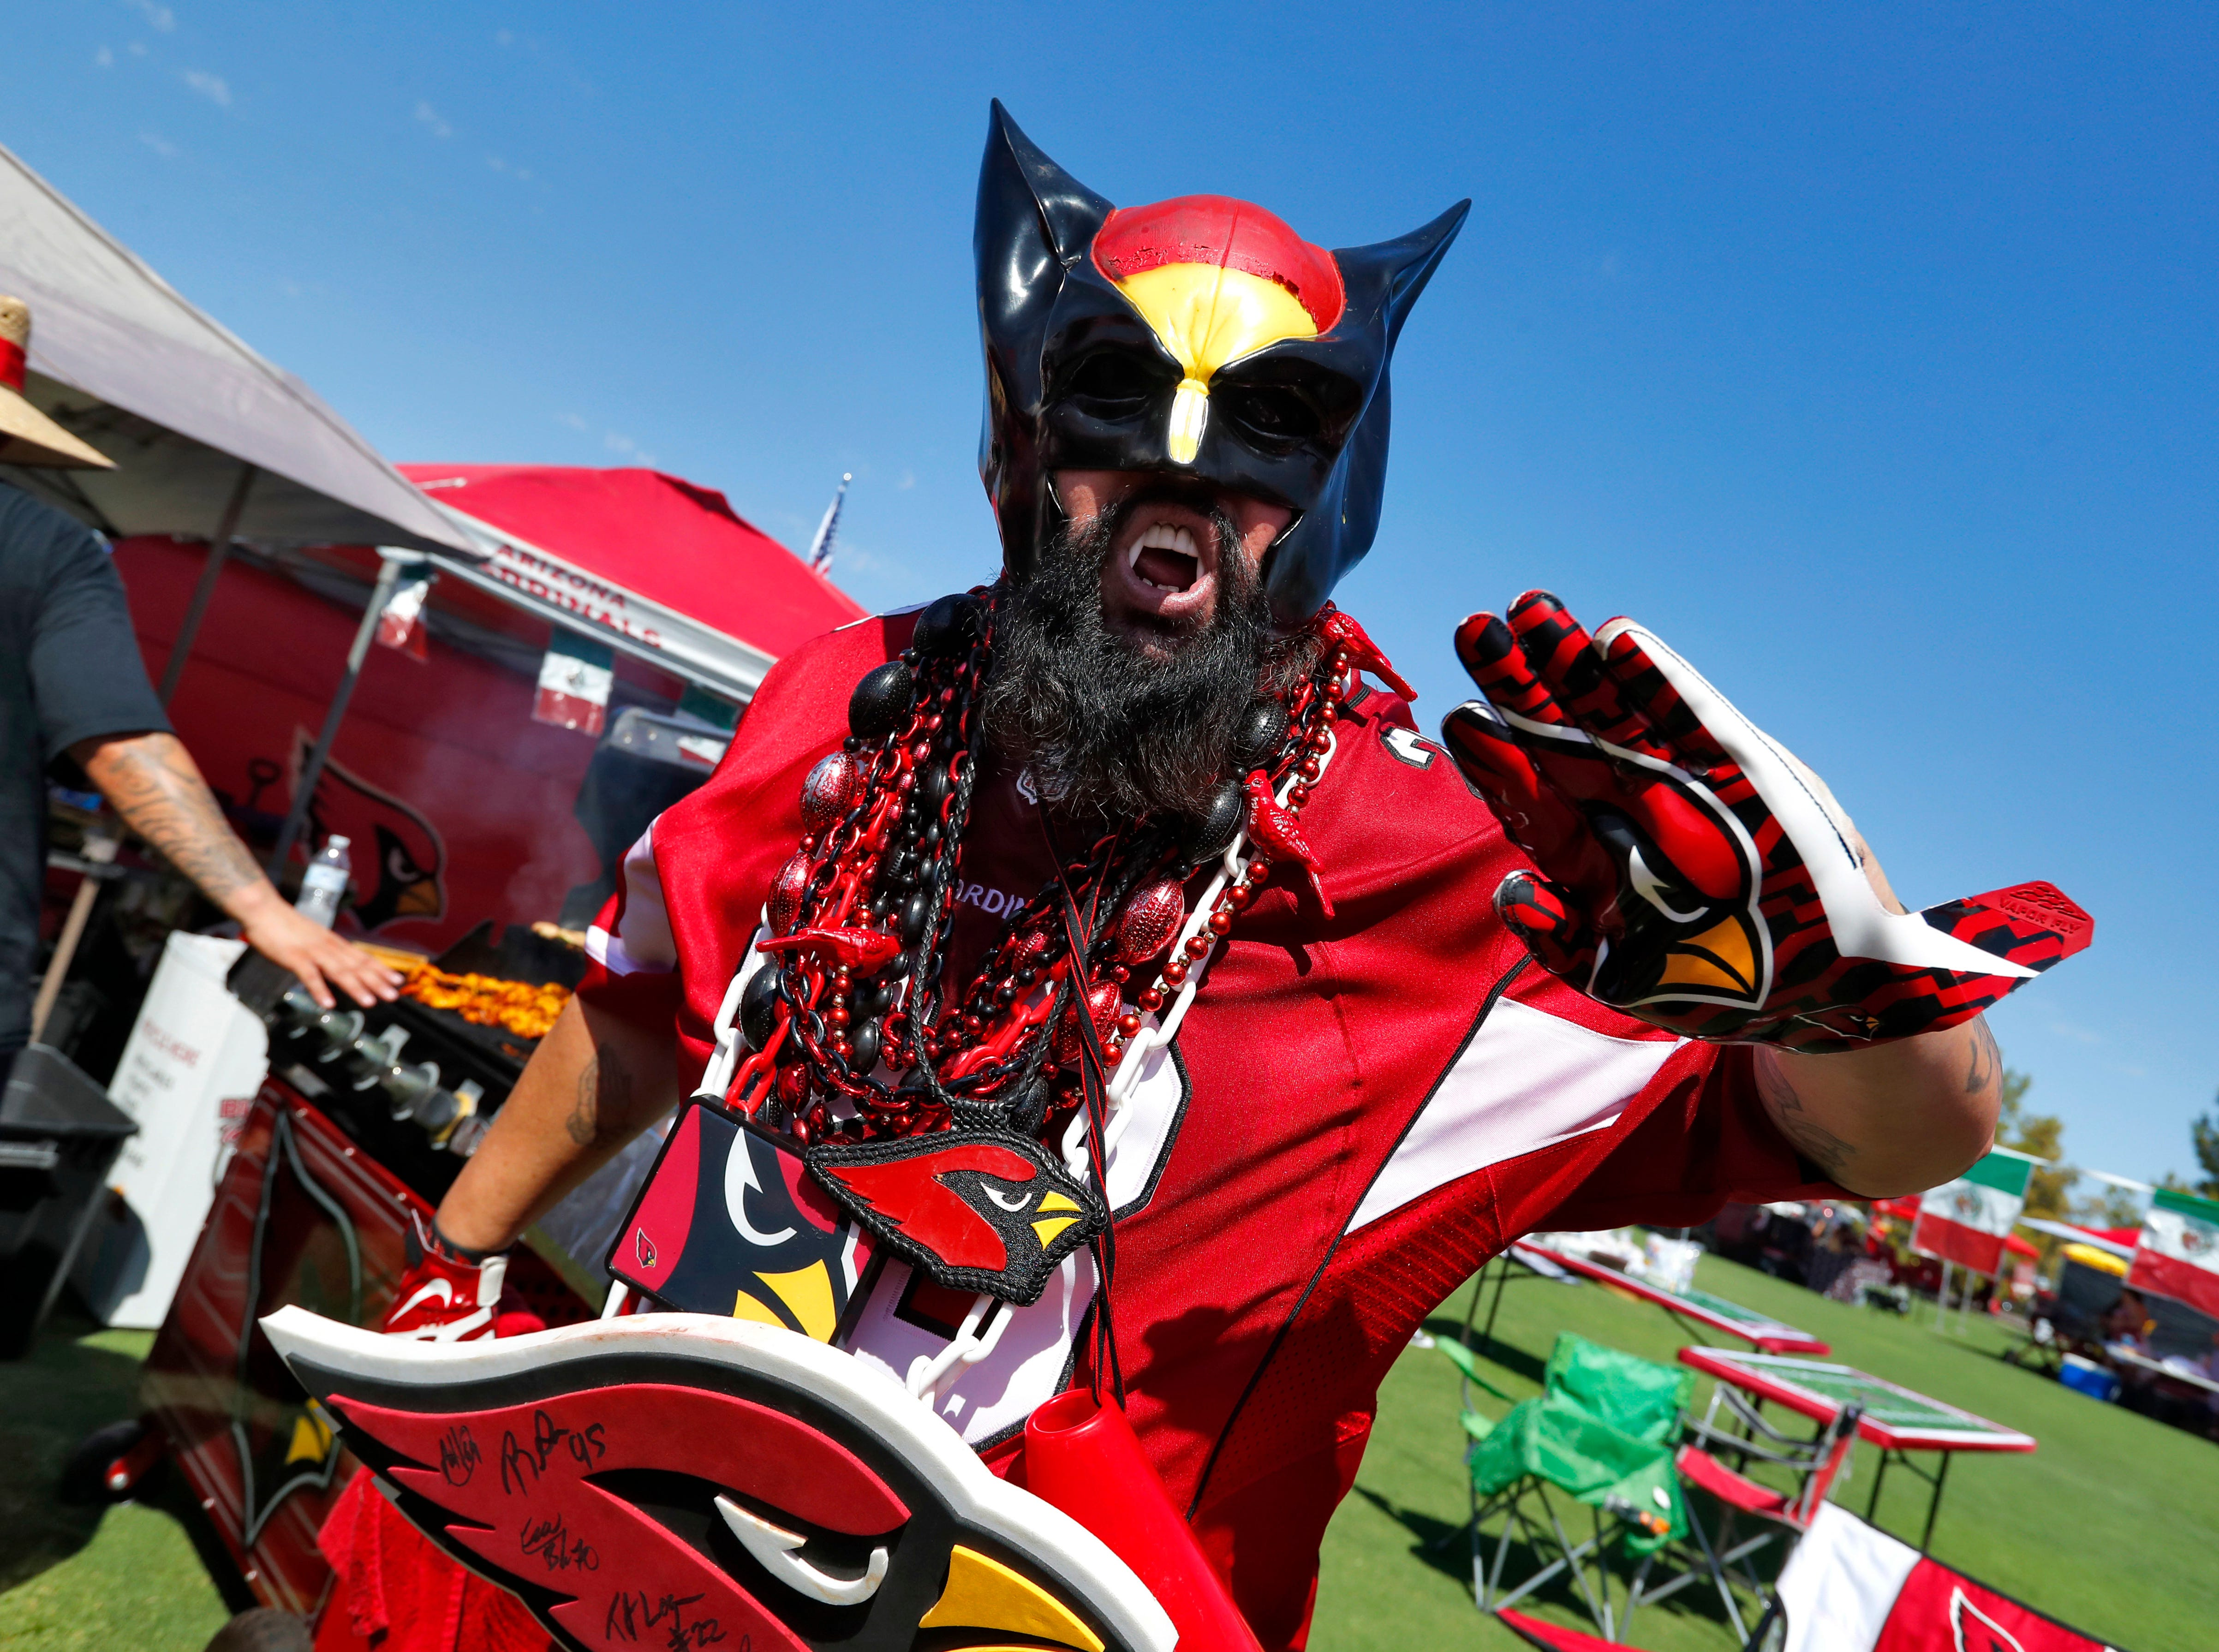 Arizona Cardinals Chris Chavez tailgates prior to an NFL football game against the Washington Redskins, Sunday, Sept. 9, 2018, in Glendale, Ariz.